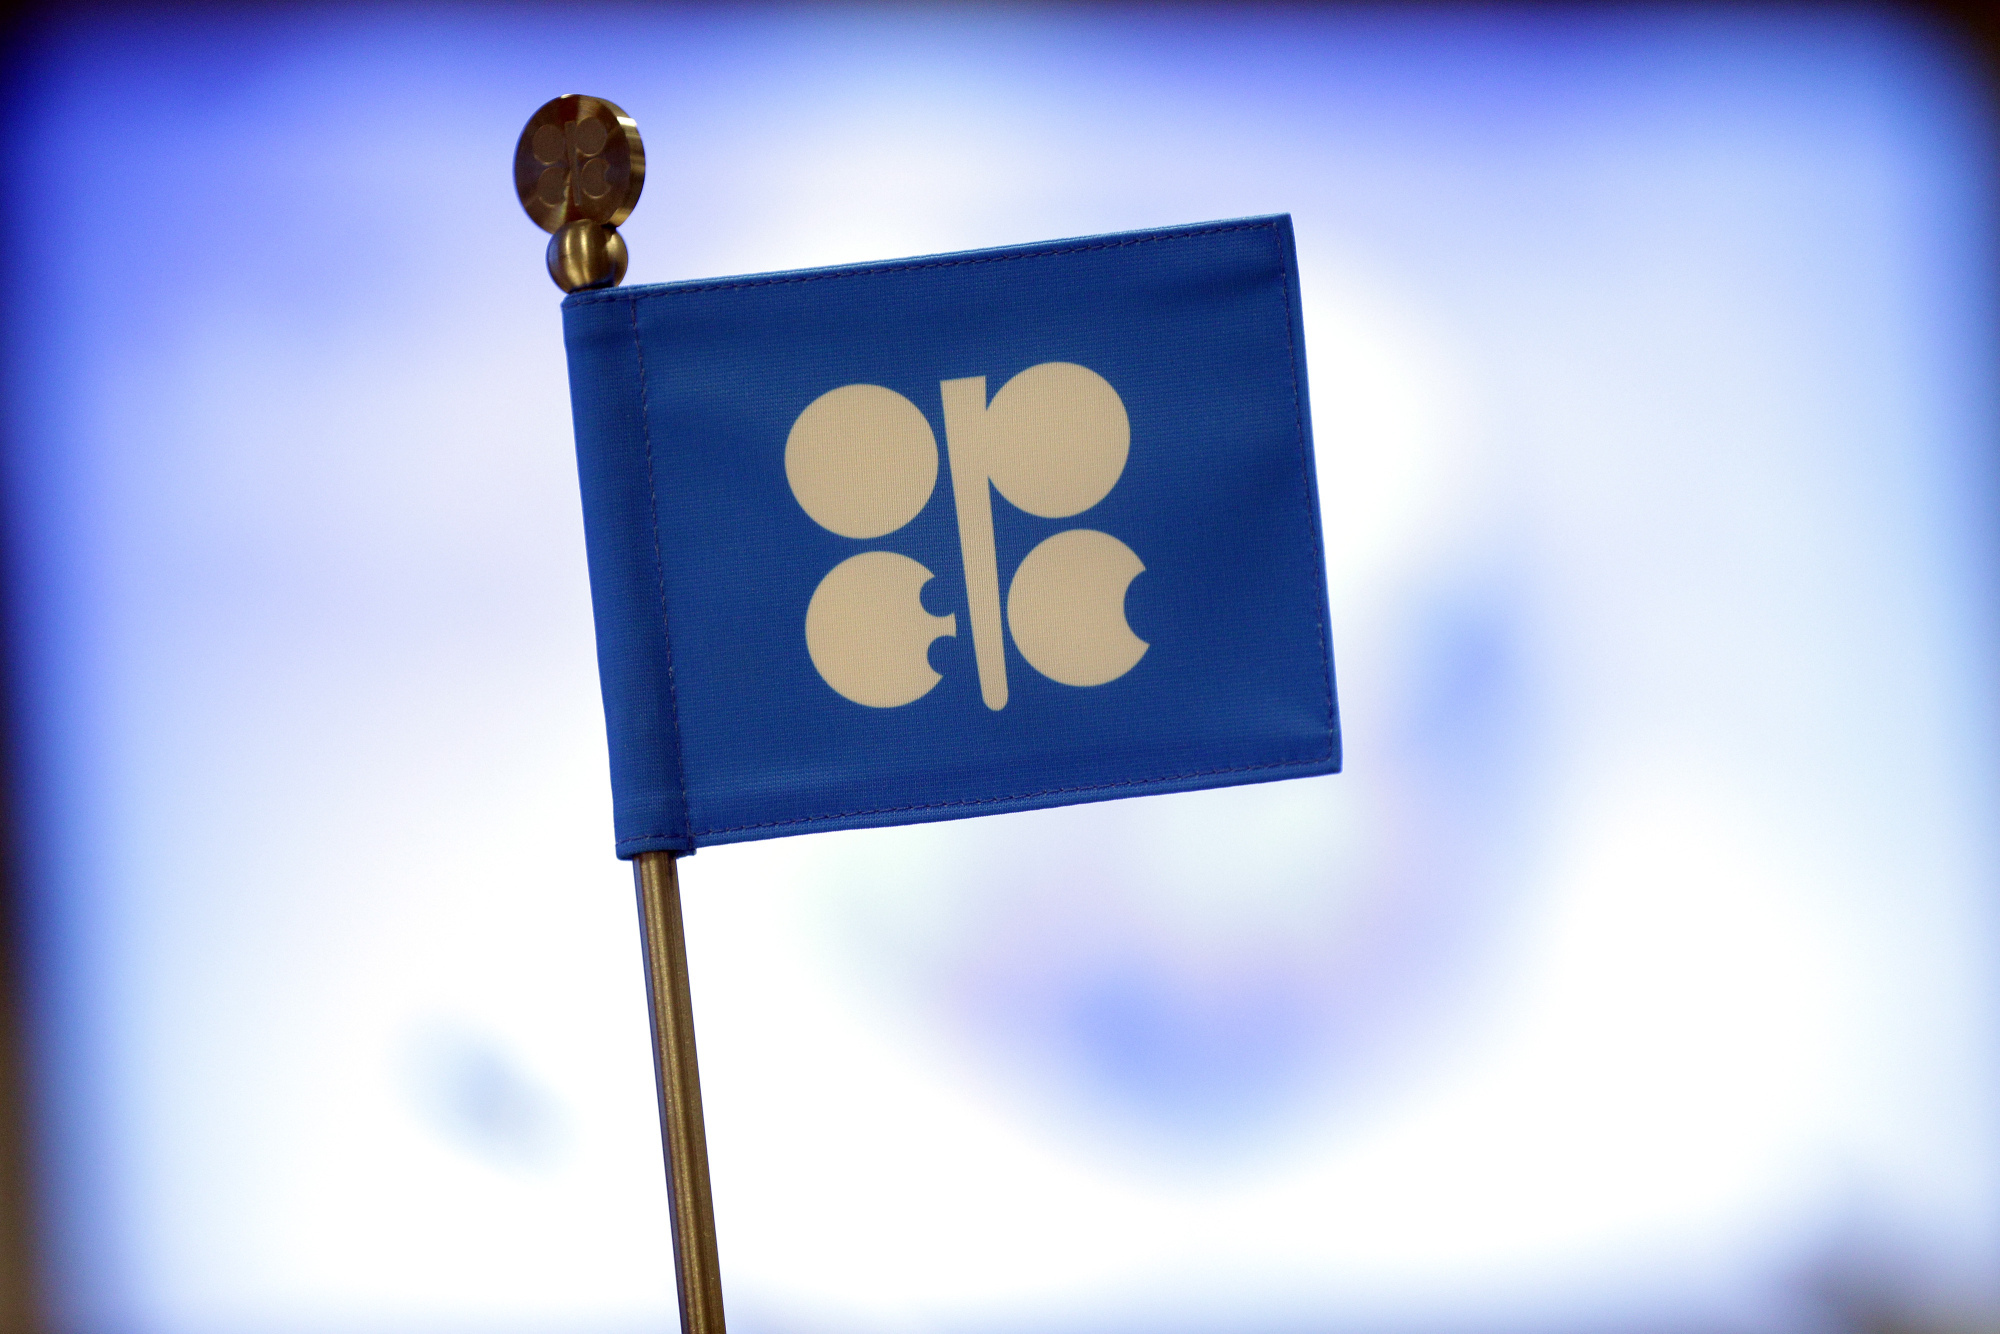 The flag of the Organization of Petroleum Exporting Countries (OPEC) stands on a desk during a news conference at the OPEC Secretariat in Vienna, Austria. Photographer: Lisi Niesner/Bloomberg